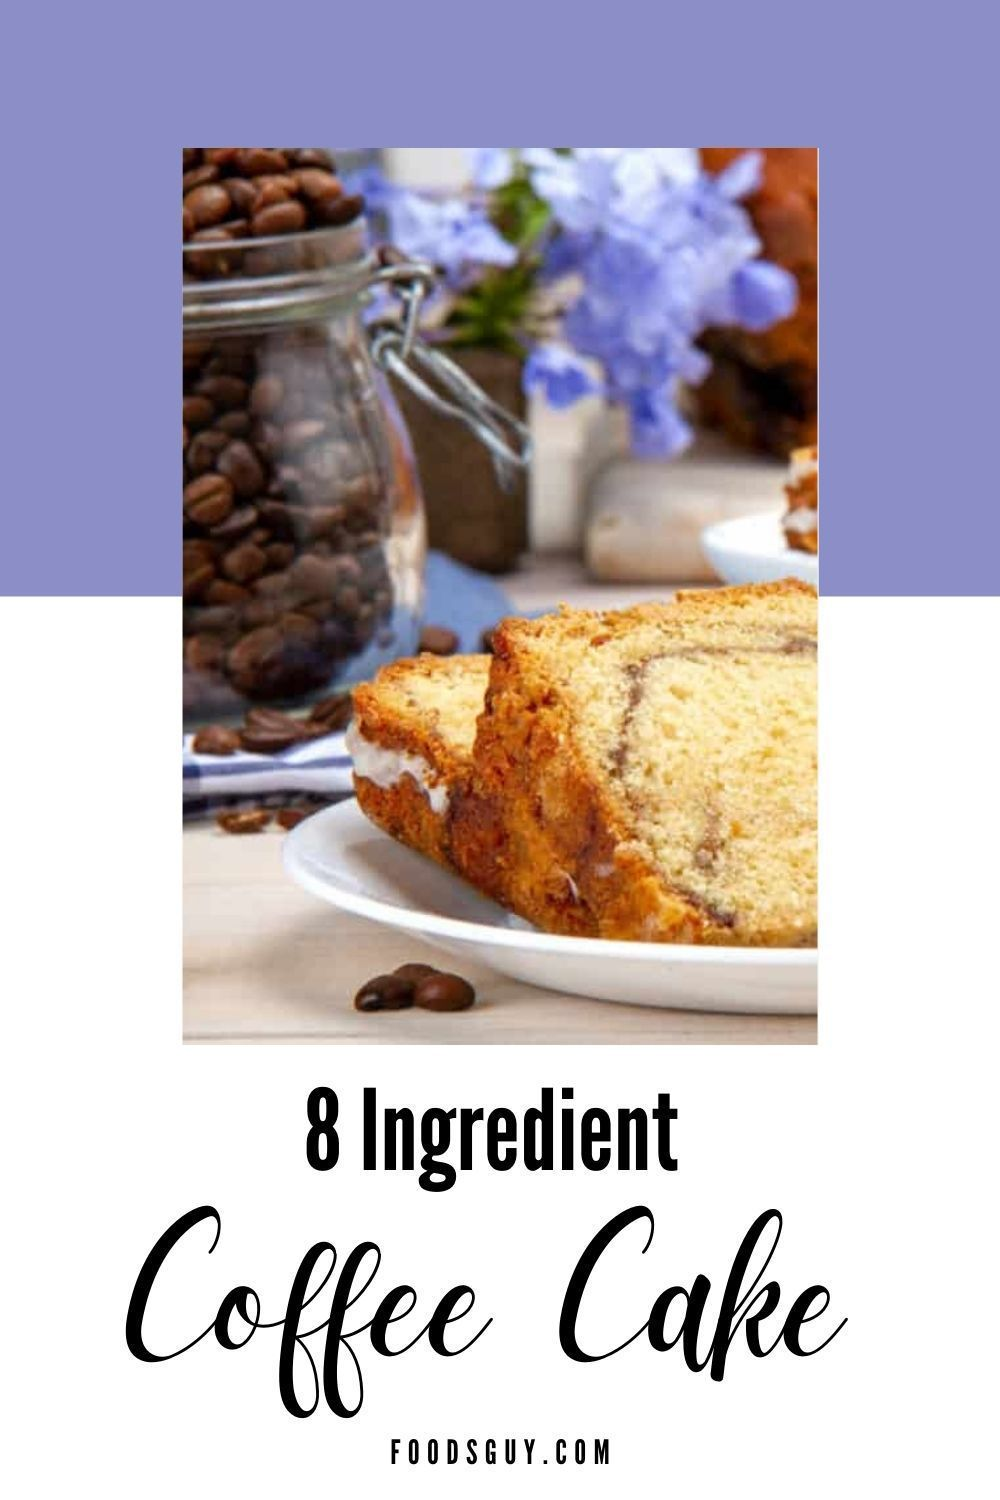 Coffee Cake Without Sour Cream Recipe in 2020 Coffee